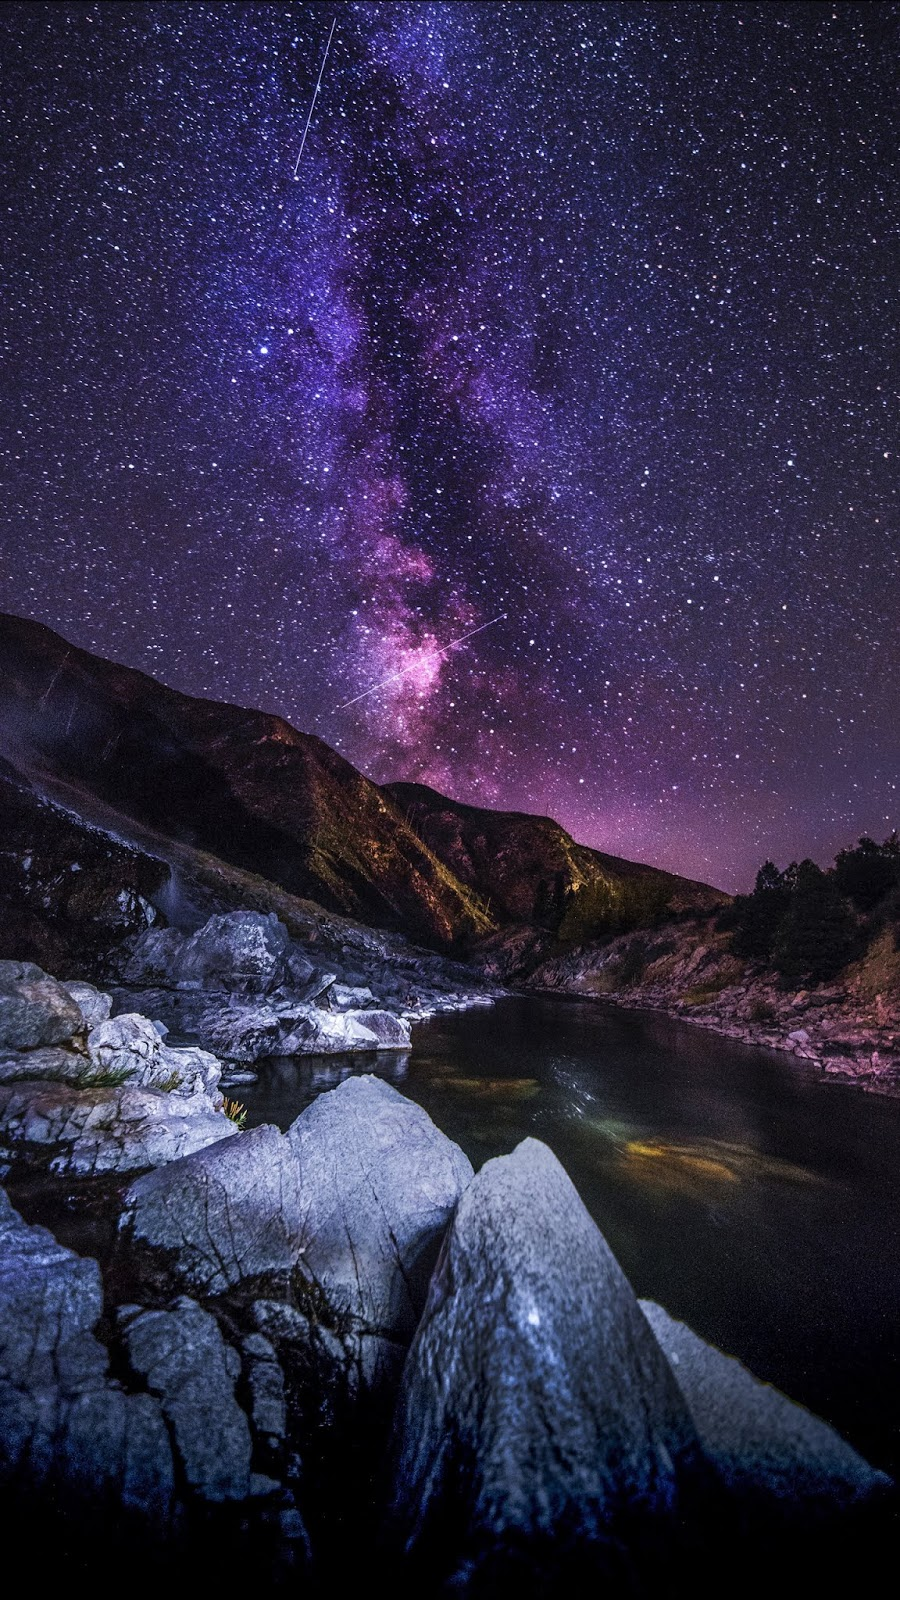 Colorful milky way